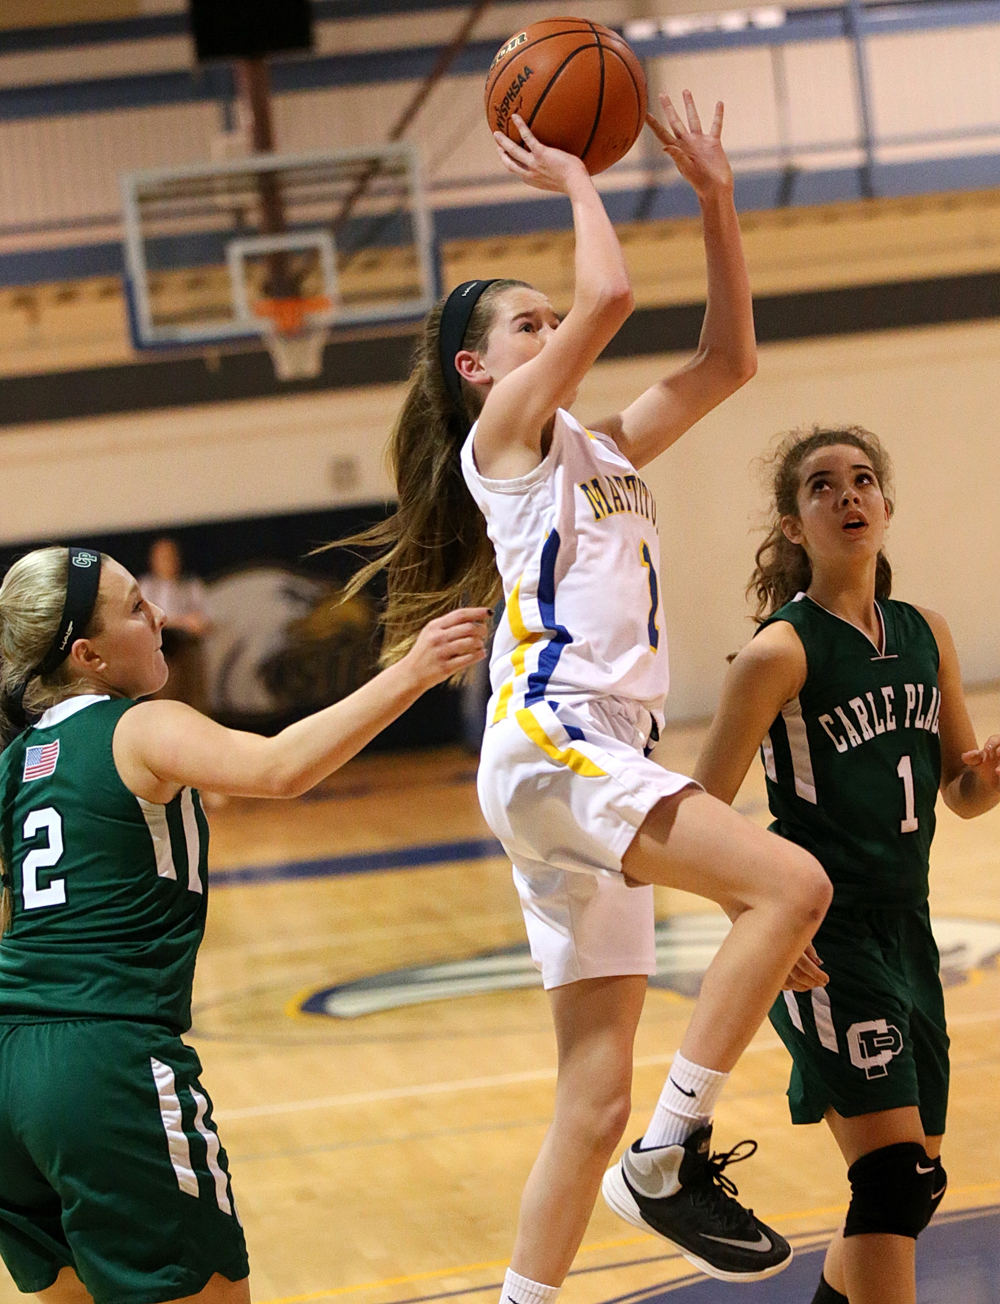 Mackenzie Daly floats a shot in the lane. (Credit: Garret Meade)